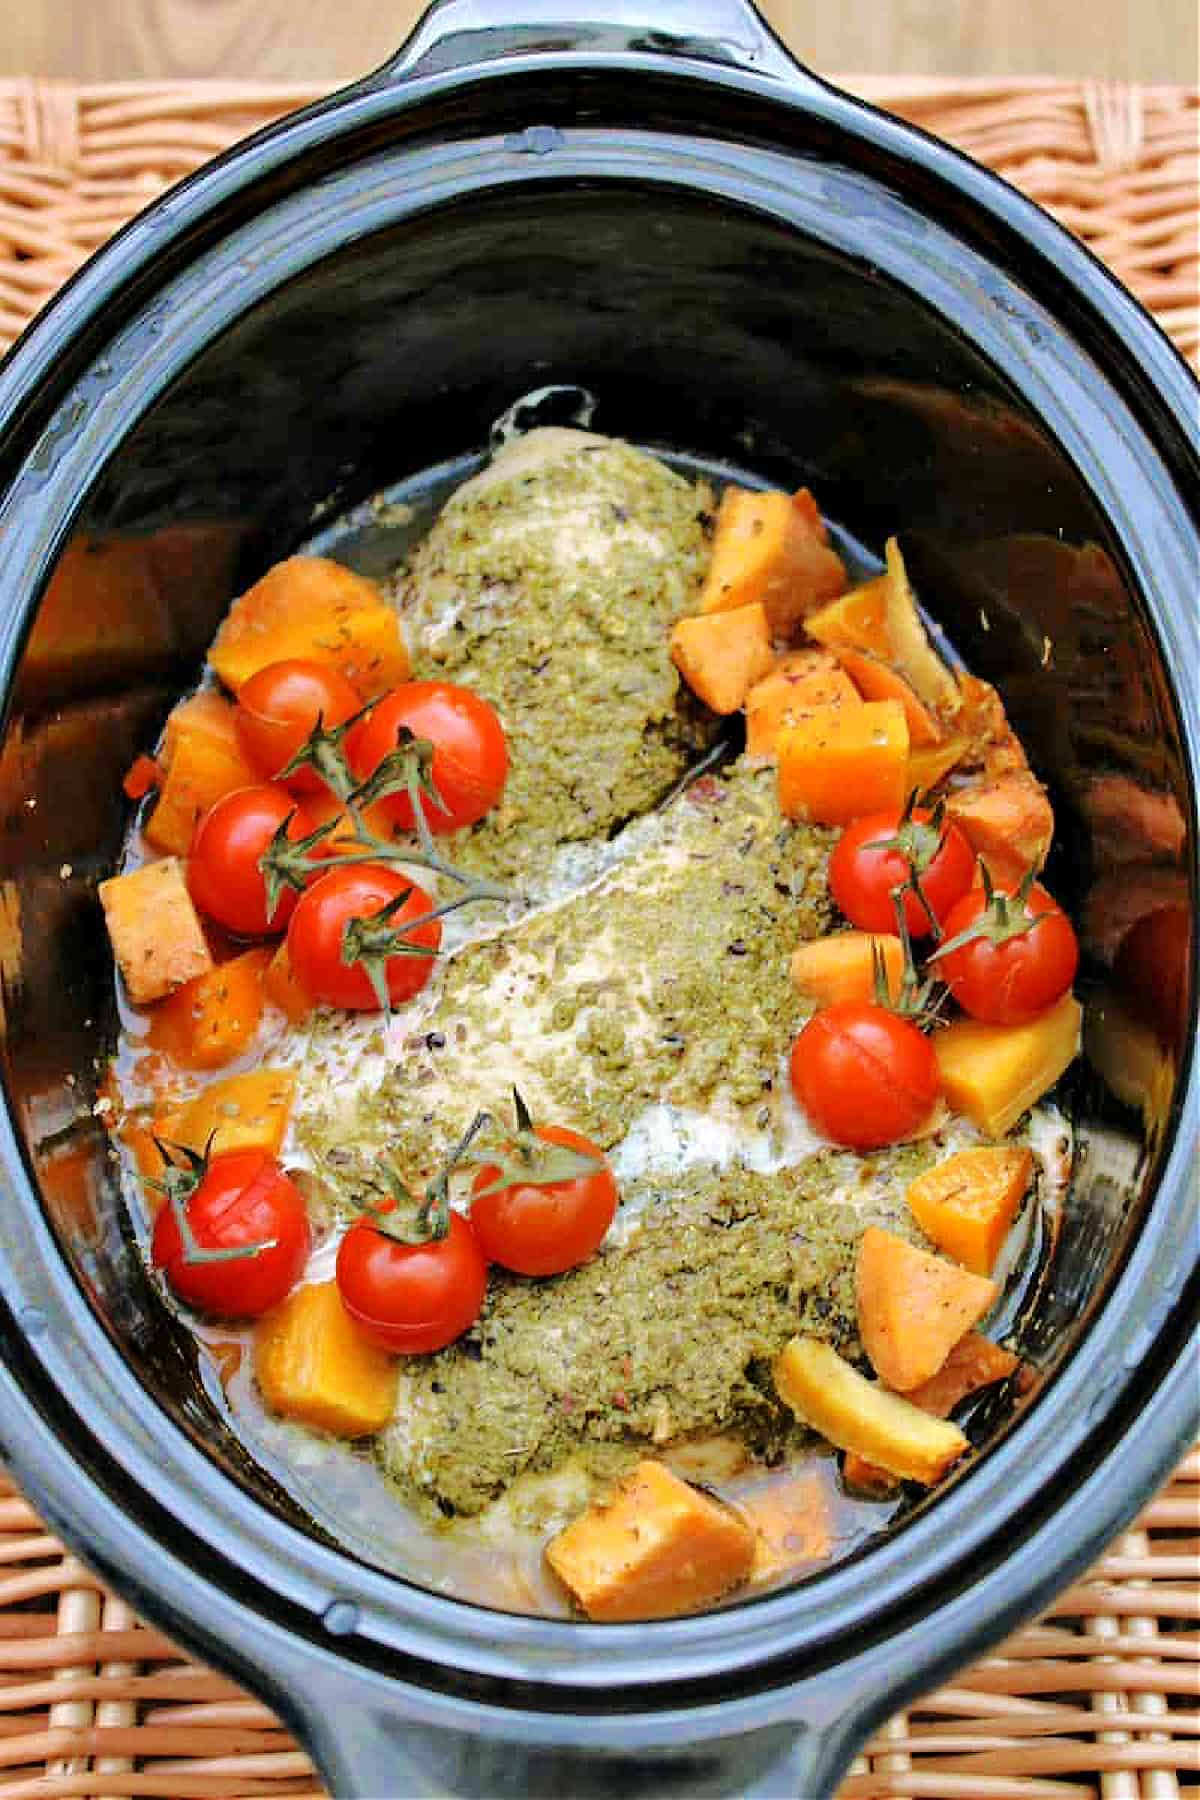 Slow cooker full of chicken with pesto on top, tomatoes and sweet potato chunks.